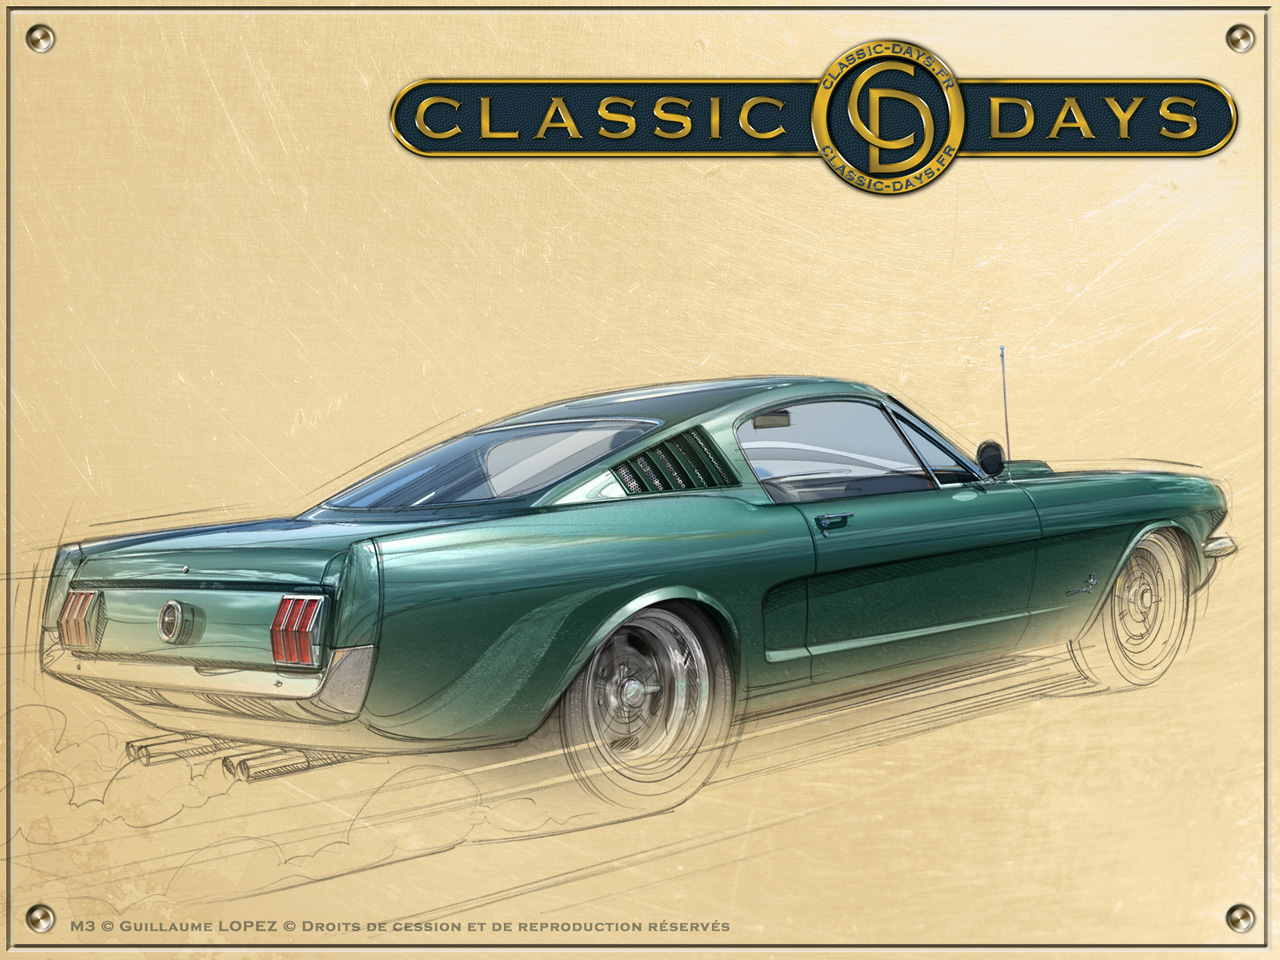 1965 Ford Mustang Fuse Box Diagram · Ford Mustang Fastback 1965 1965 Ford  Mustang Fastback Cammer Wallpaper